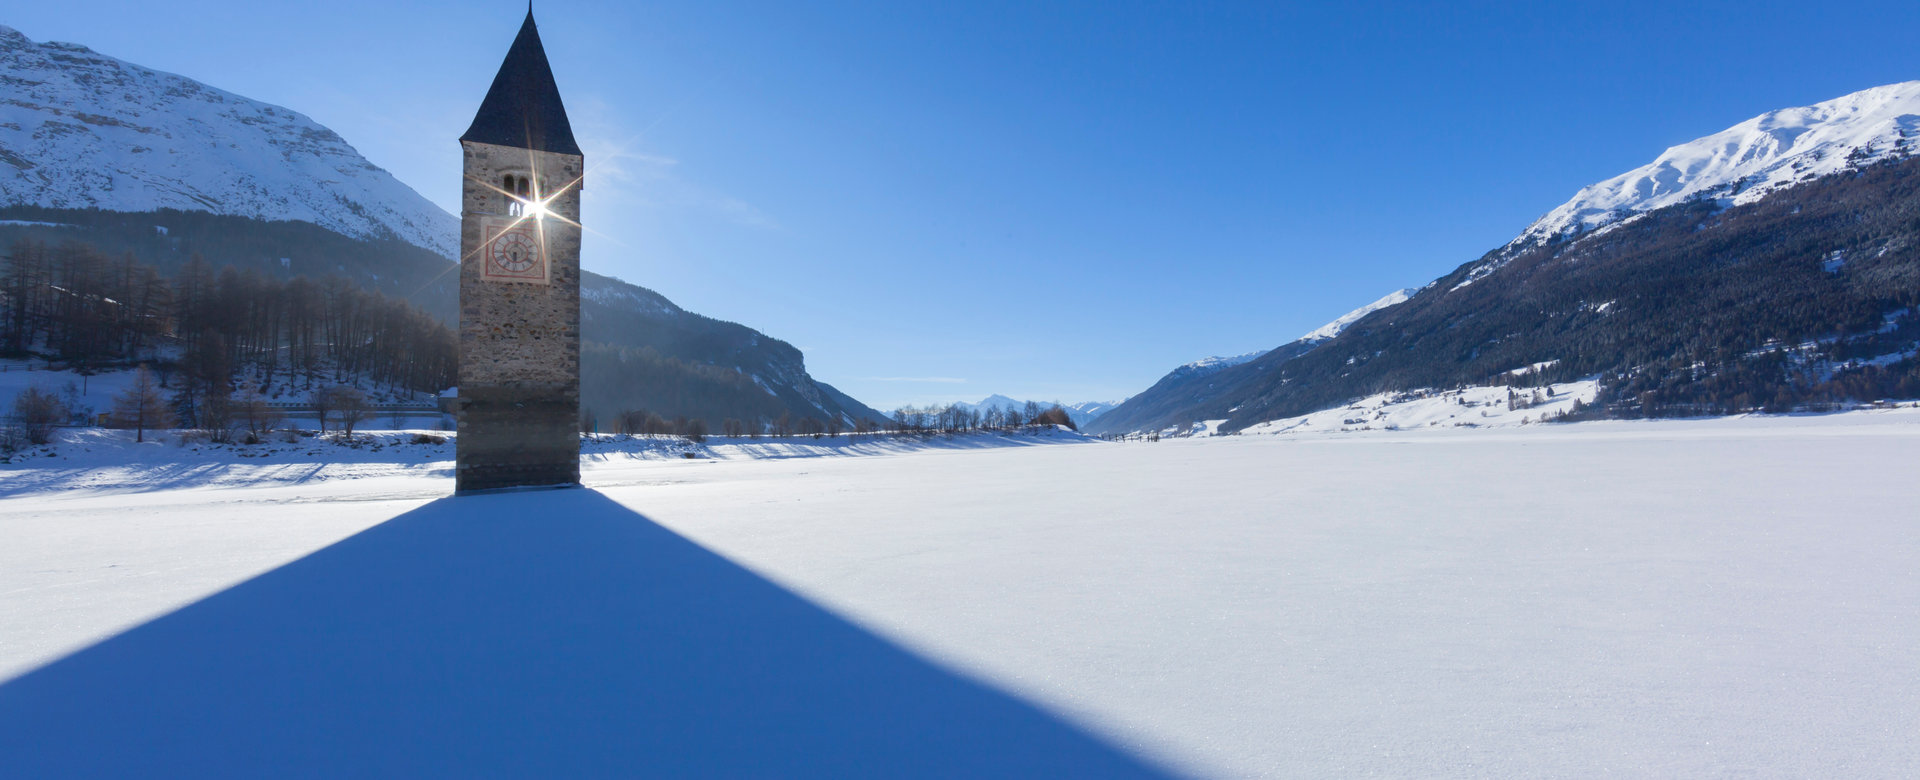 © Vinschgau Marketing – F. Blickle